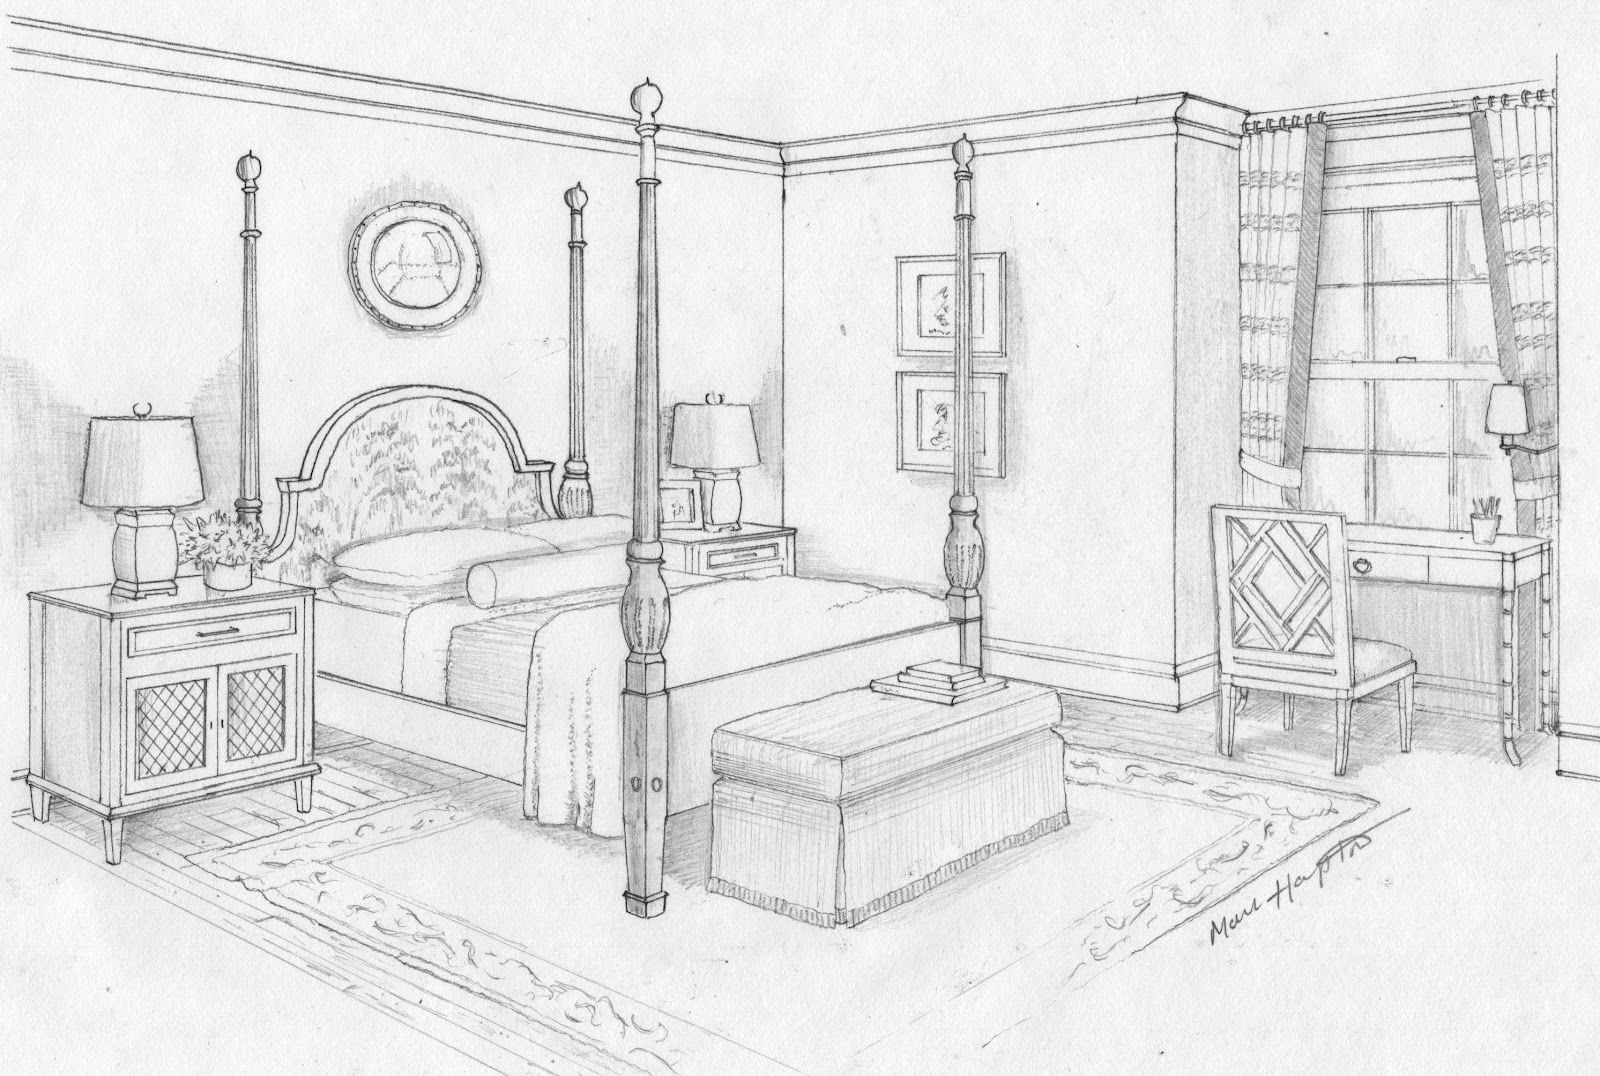 Dream bedroom sketch bedroom ideas pictures art for Design in a box interior design